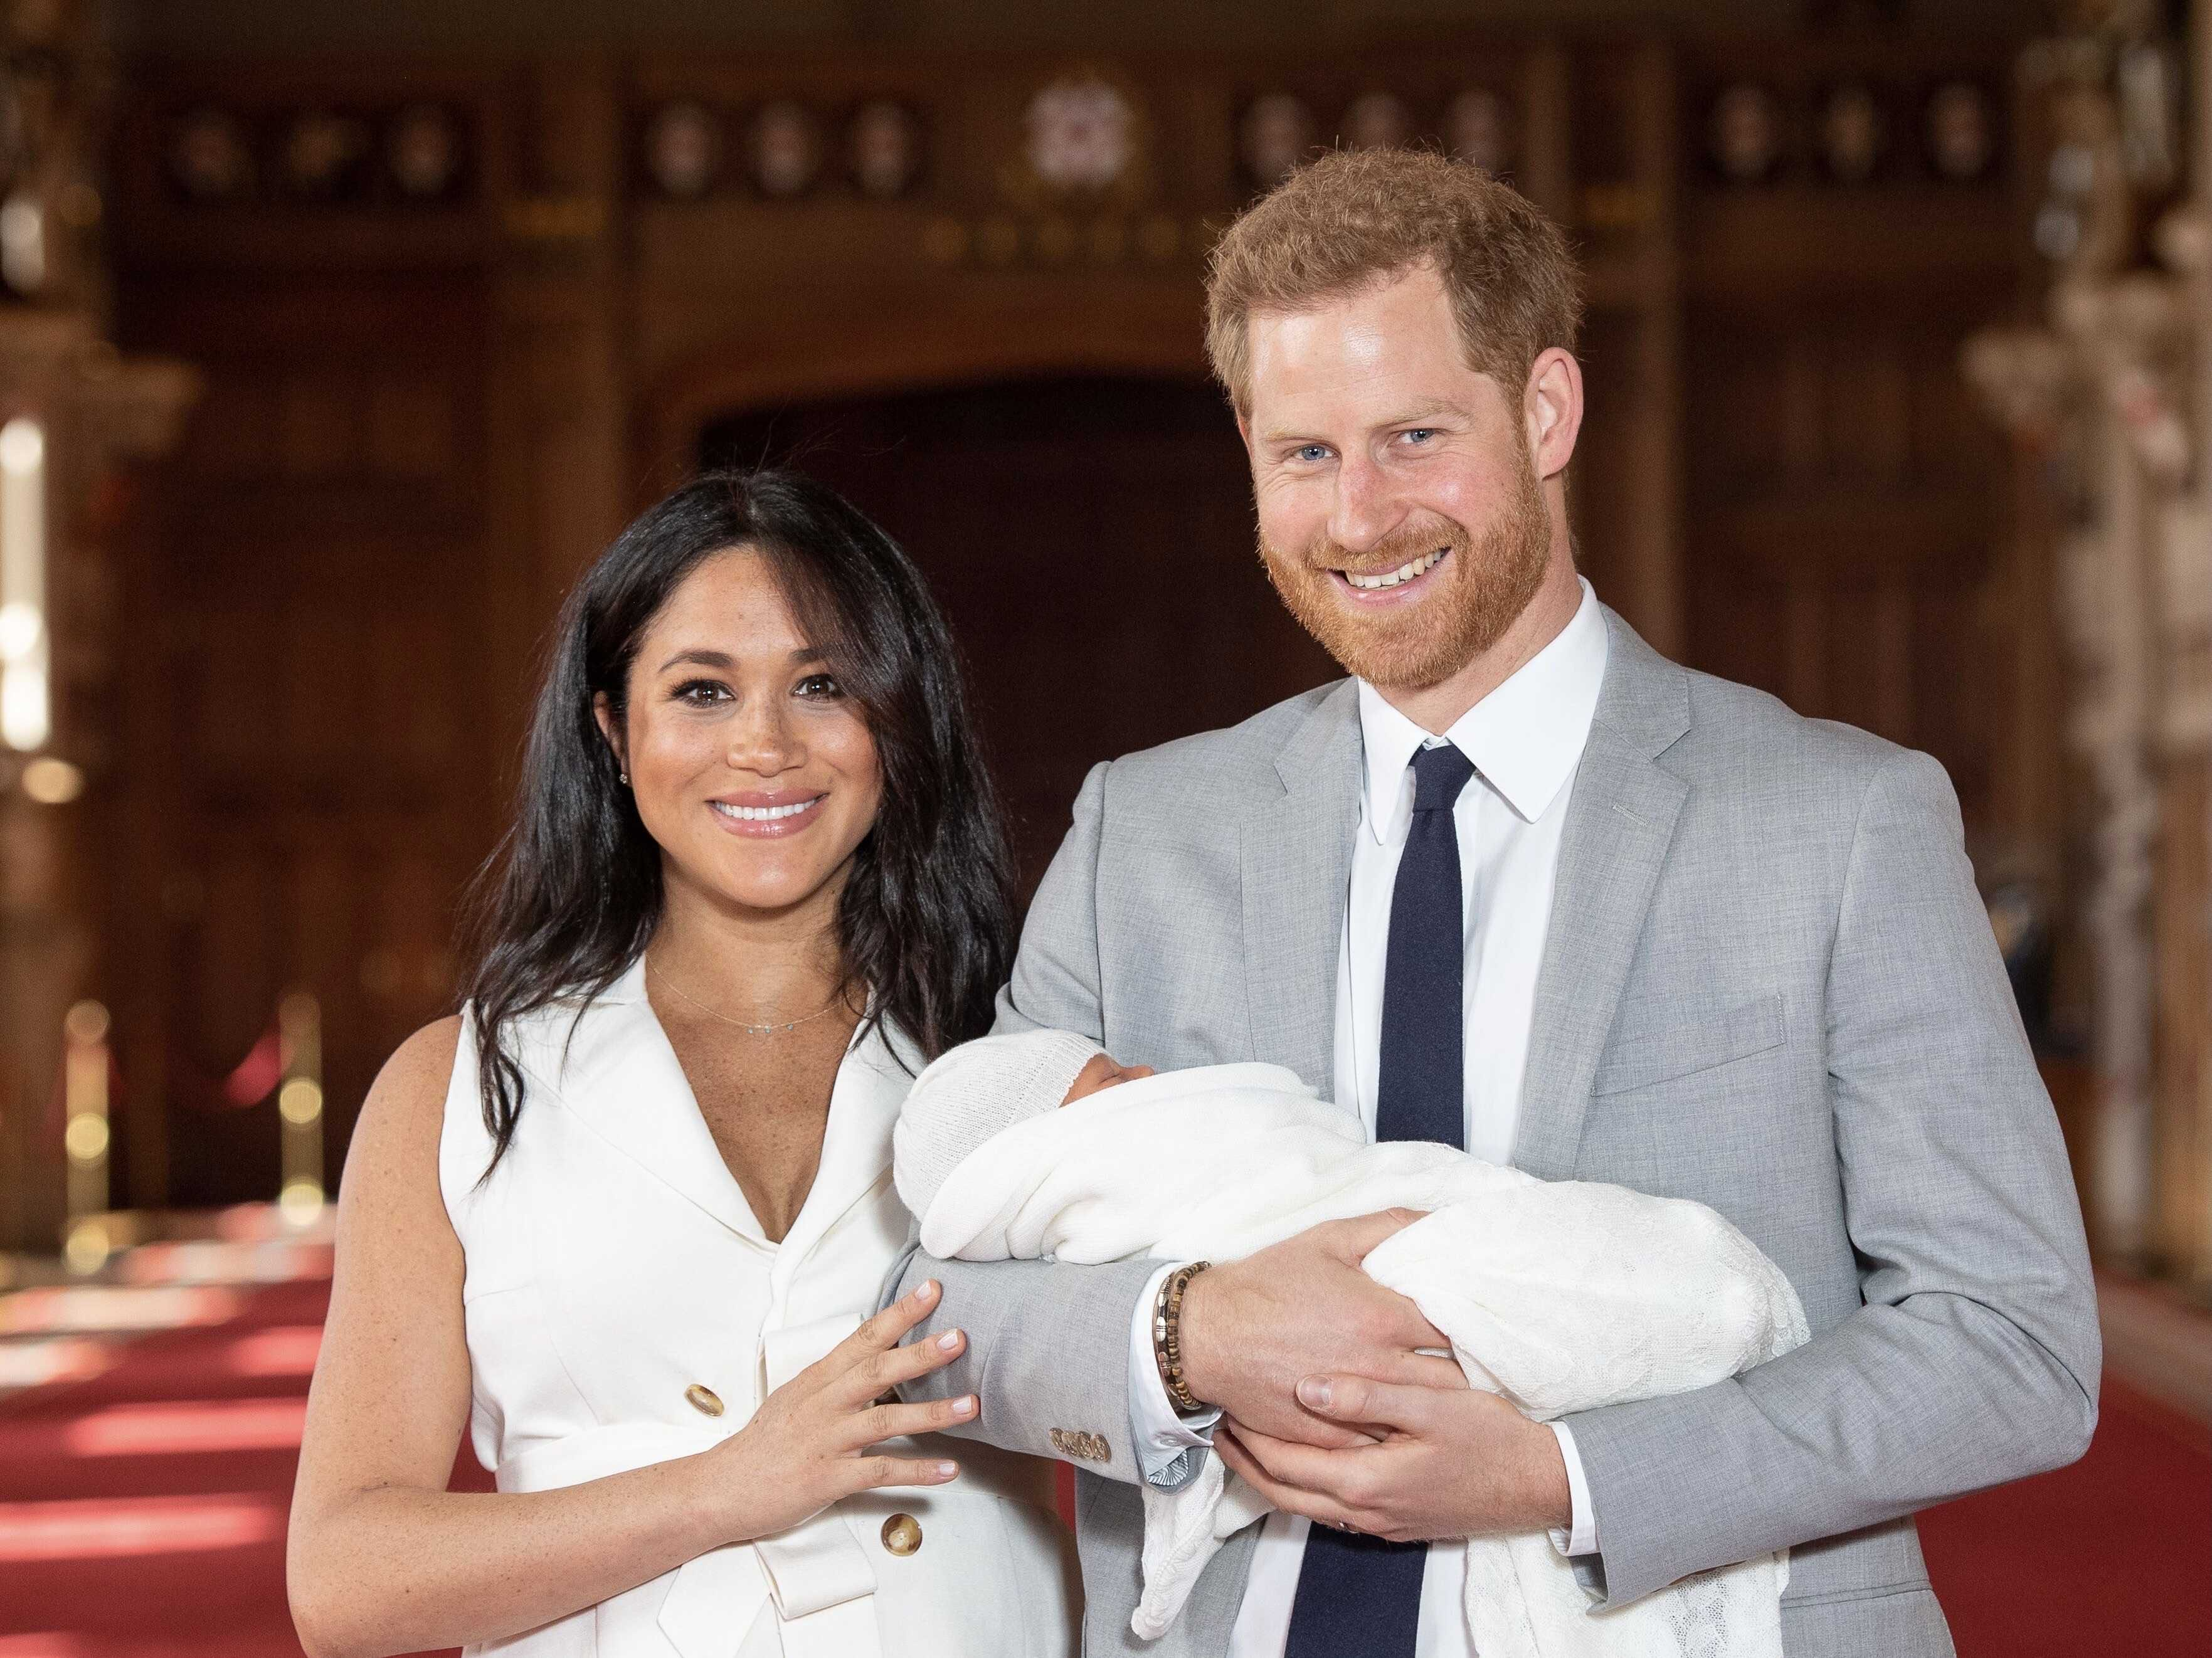 The British are unhappy that Meghan Markle and Prince Harry asked Elizabeth II to meet